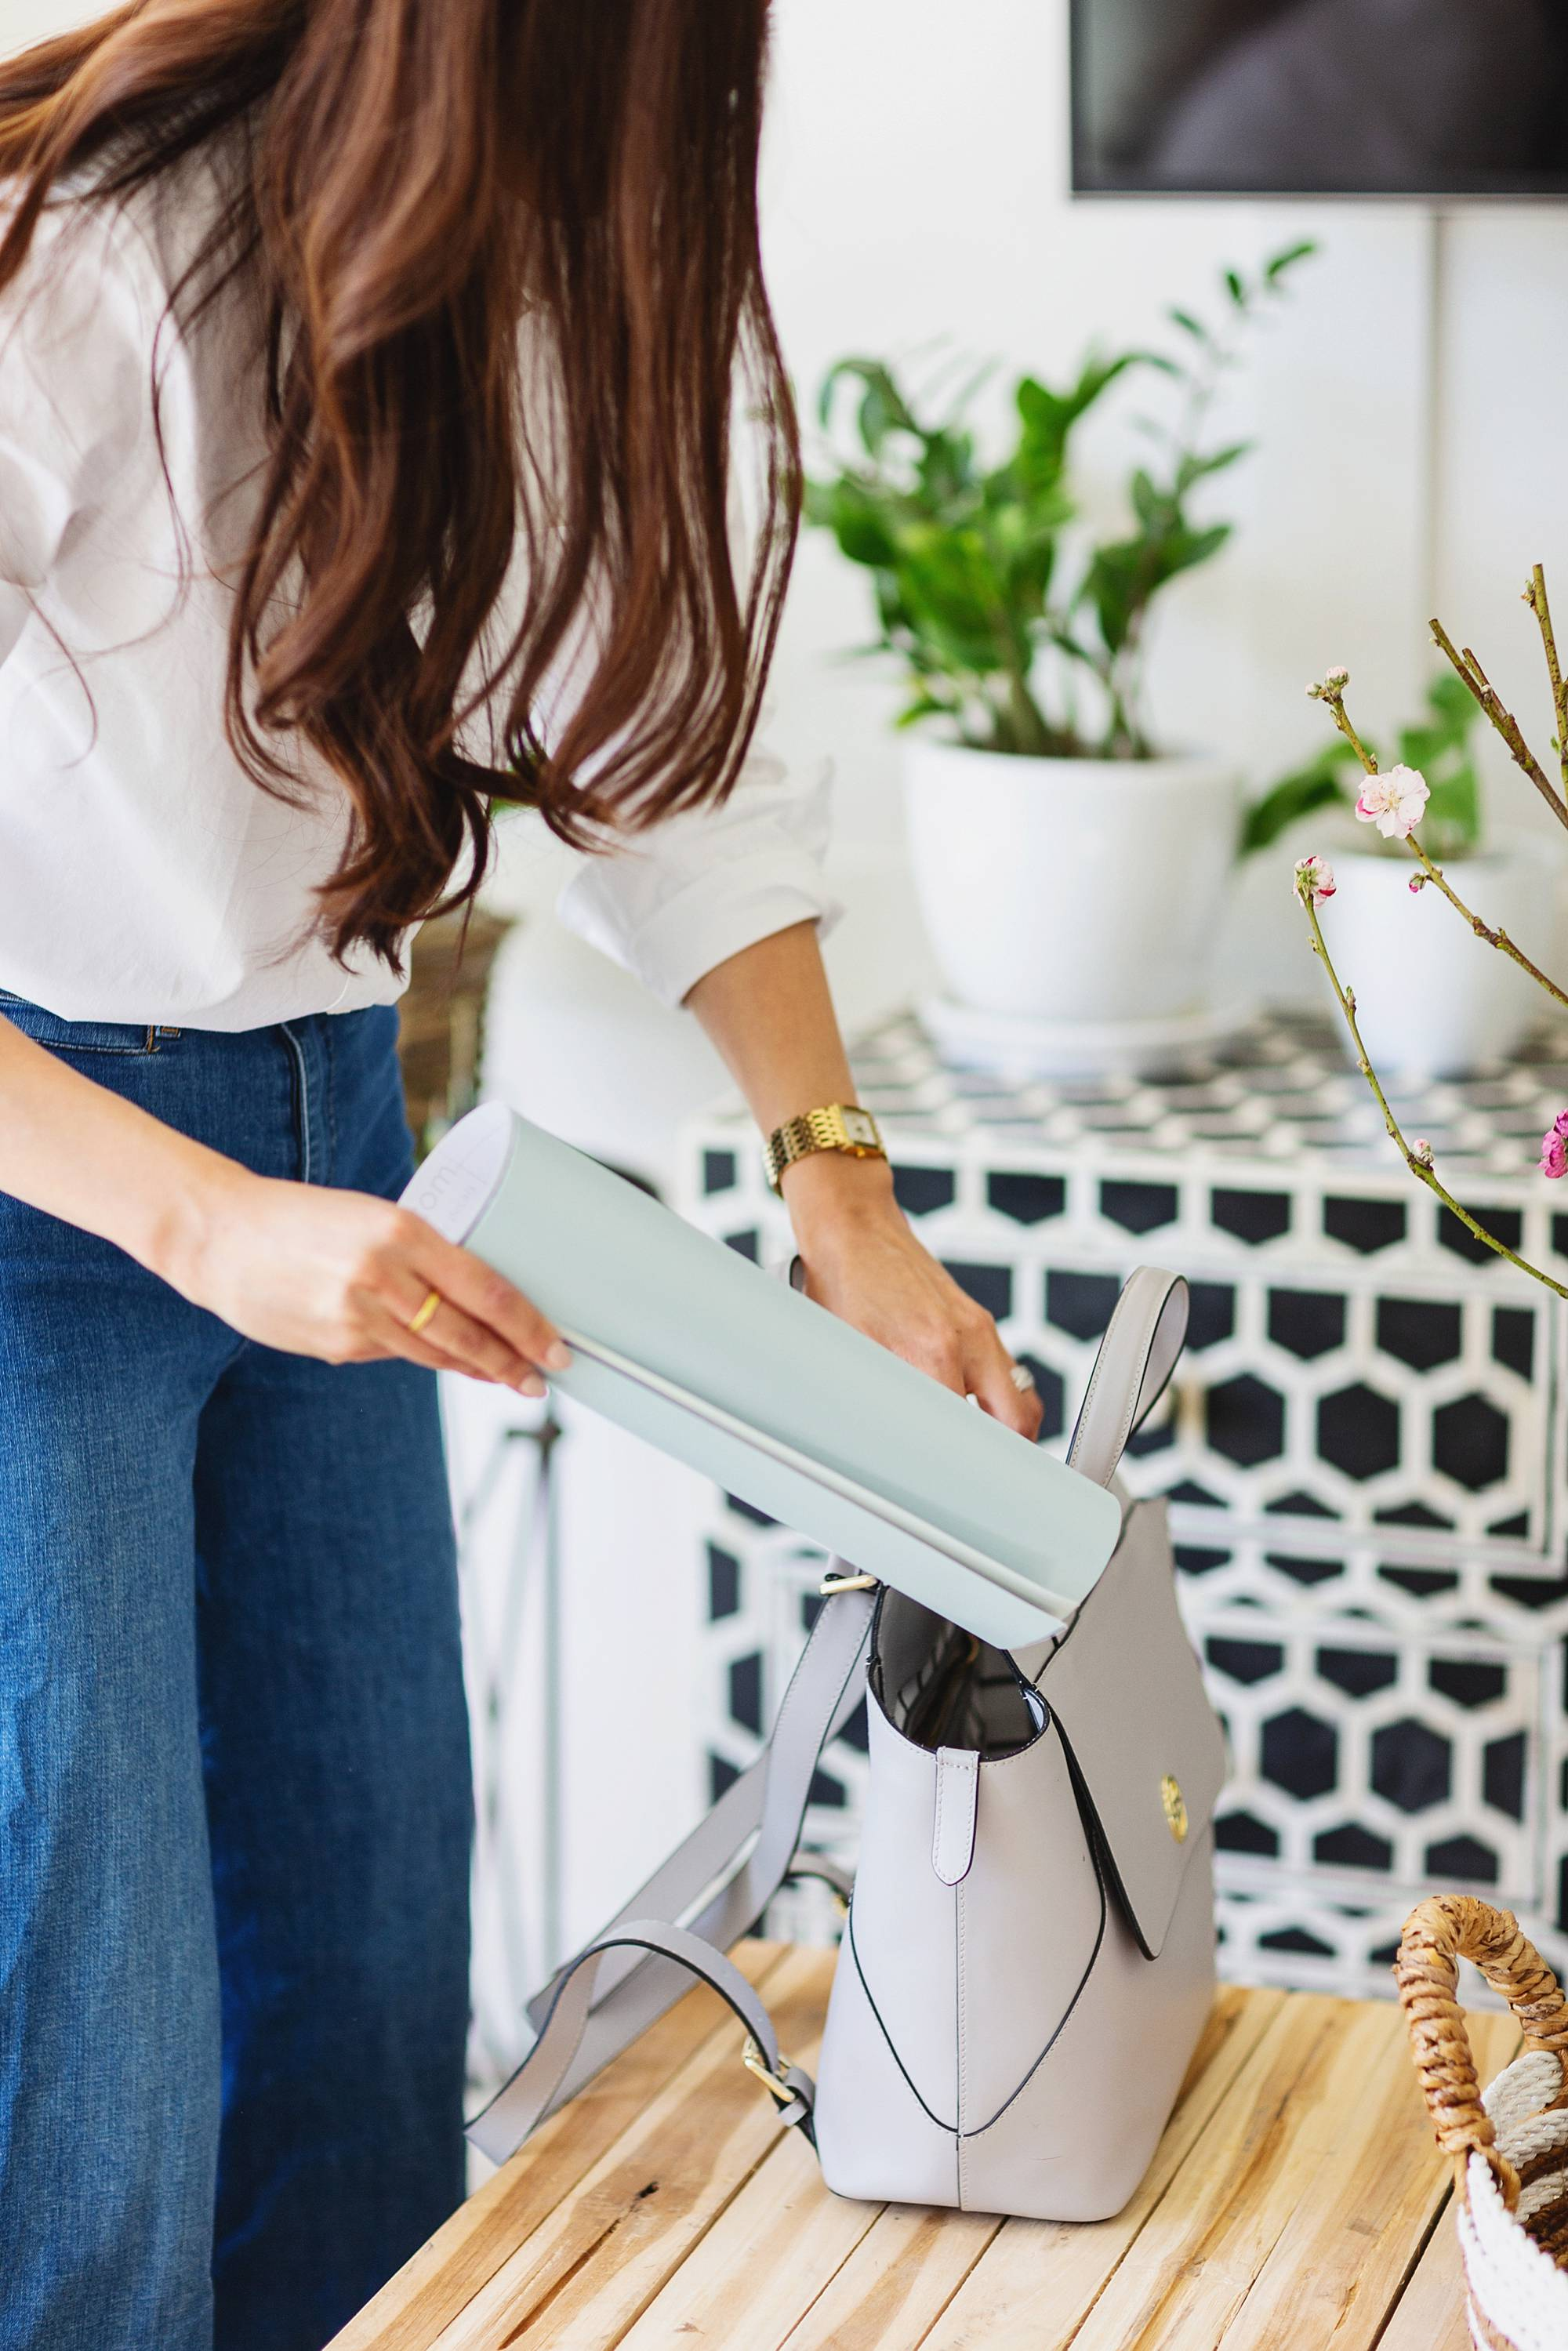 peel and stick paint samples easy no mess and cheaper than a quart of pain - check out Samplize with lifestyle blogger Diana Elizabeth, home and lifestyle blogger